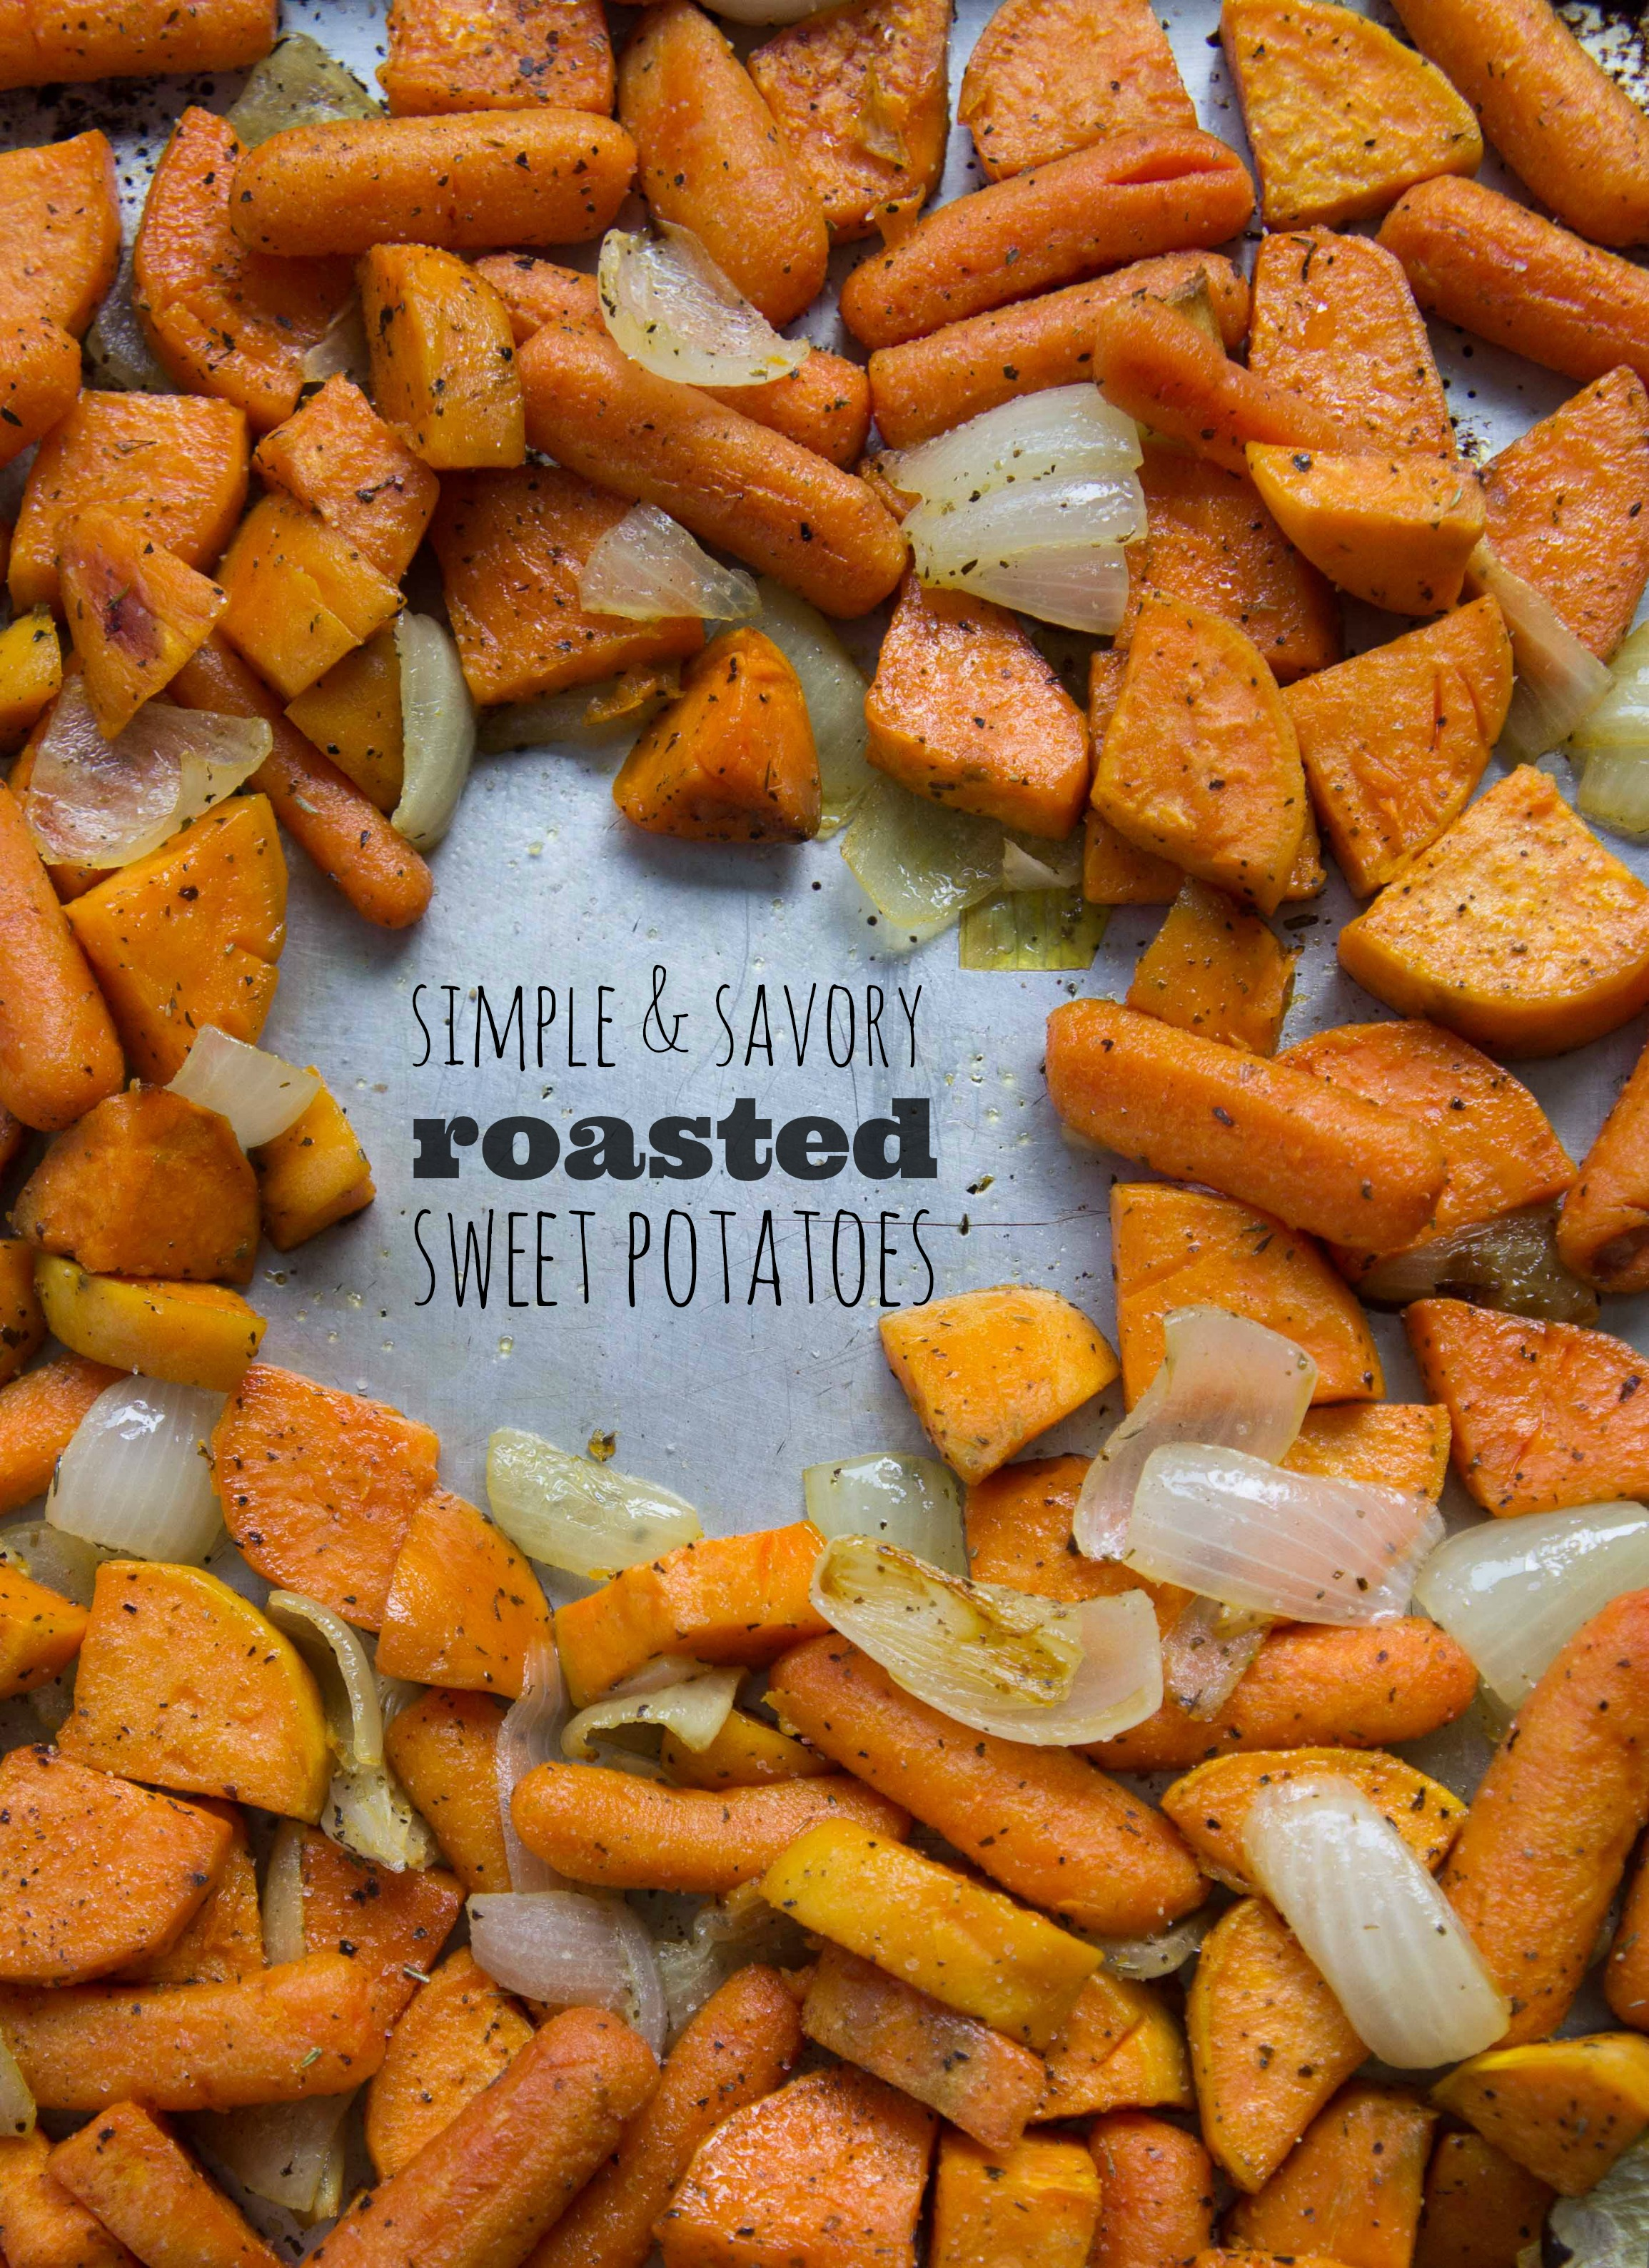 Roasted Sweet Potatoes and Carrots